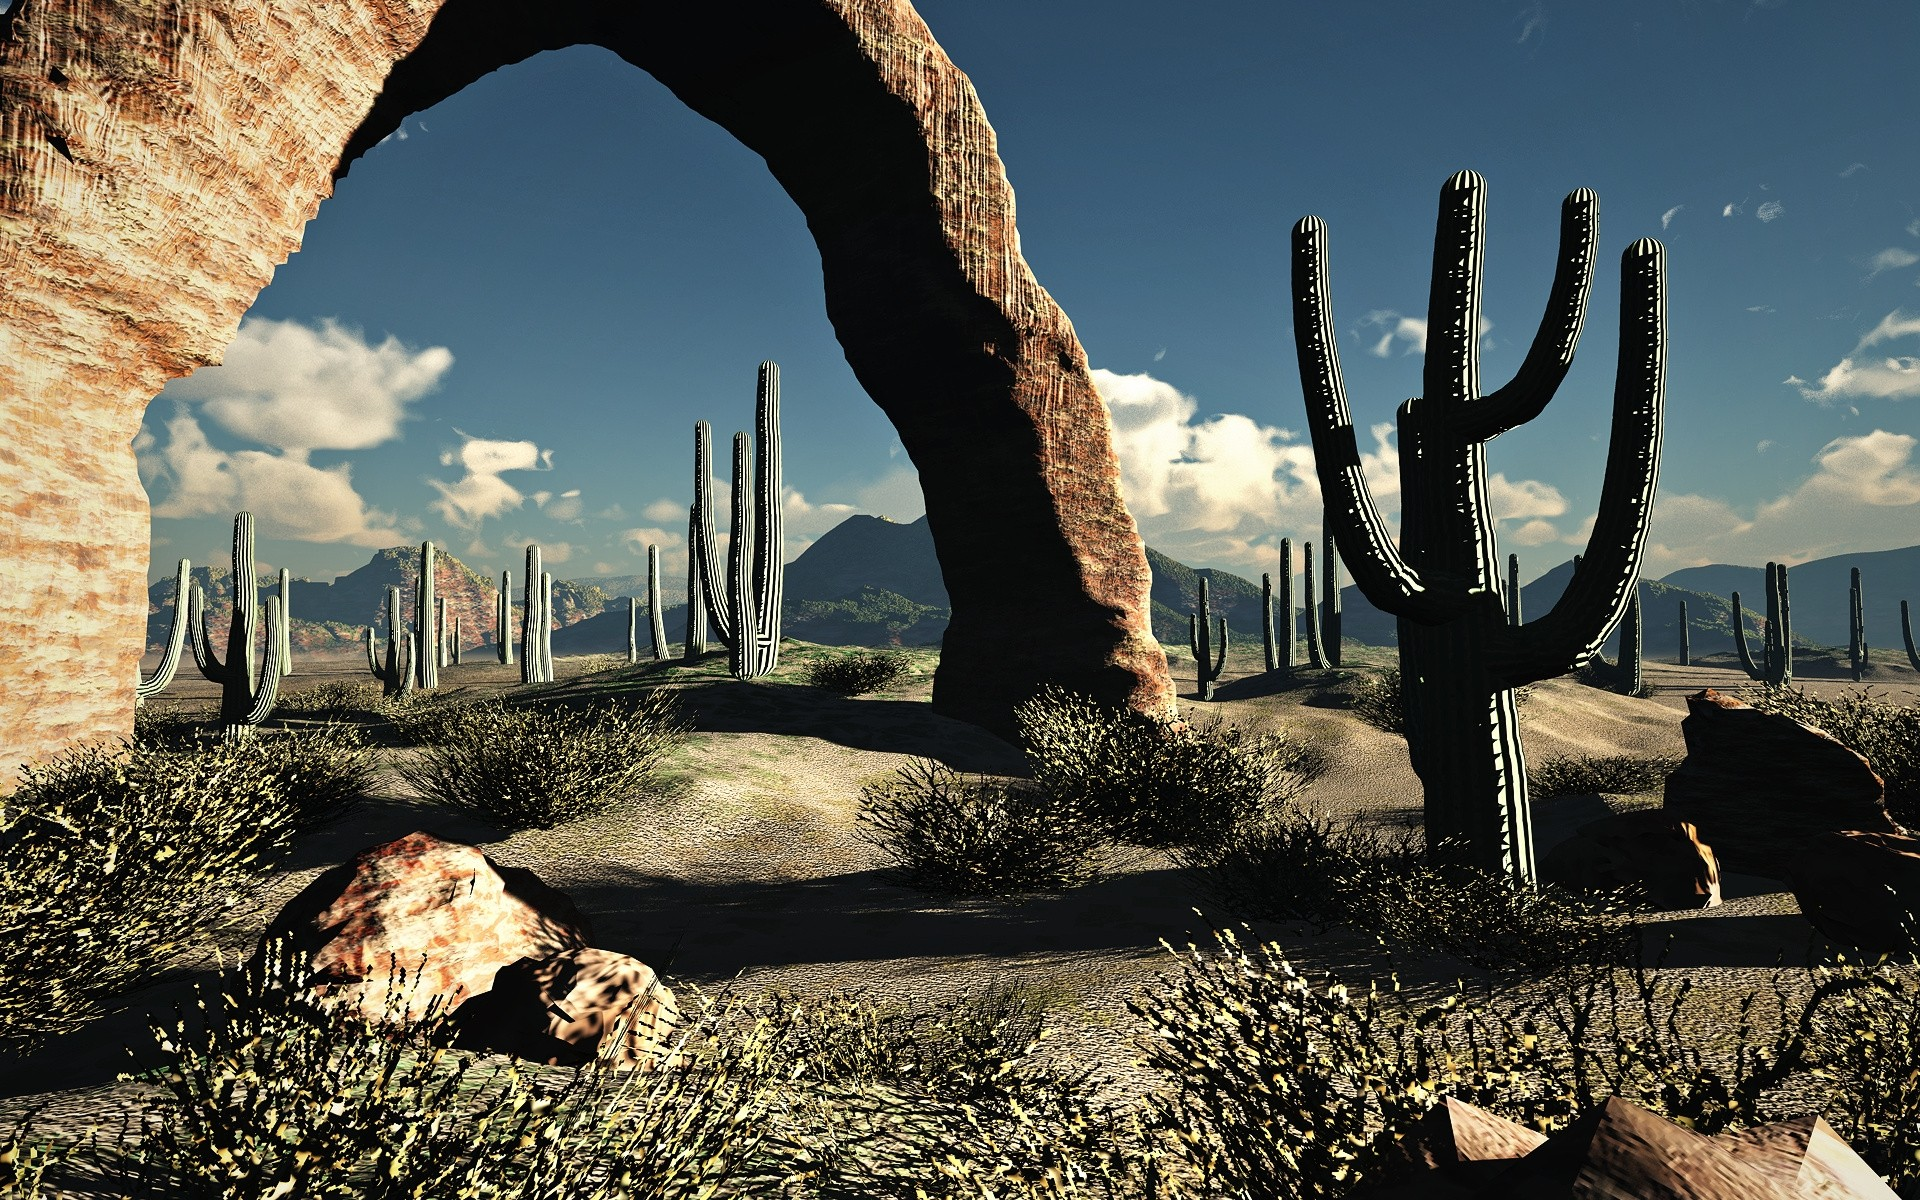 landscapes nature desert cactus wallpaper 1920x1200